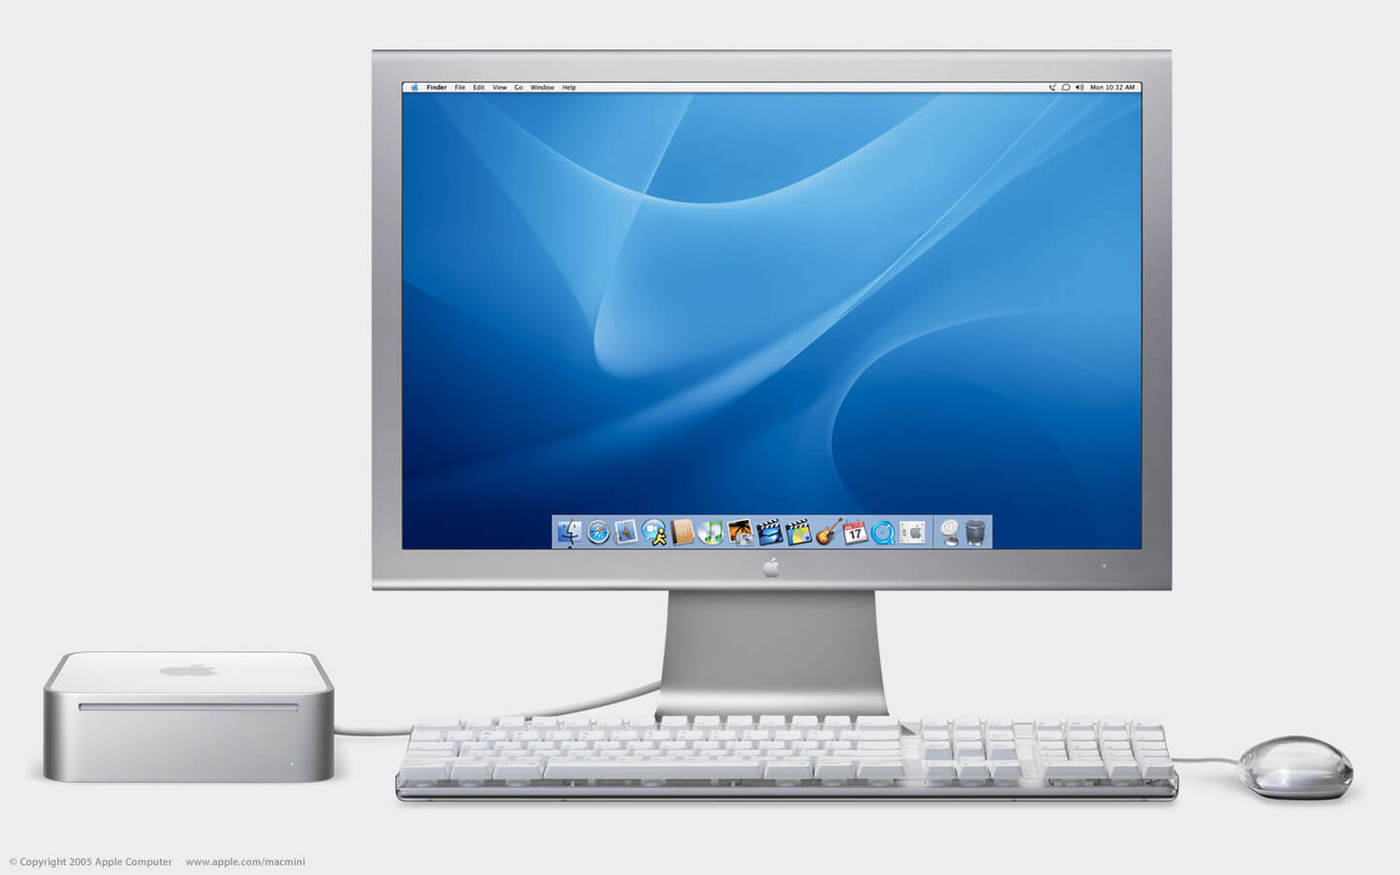 Apple Mouse 和 keyboard以及 Apple Cinema Display